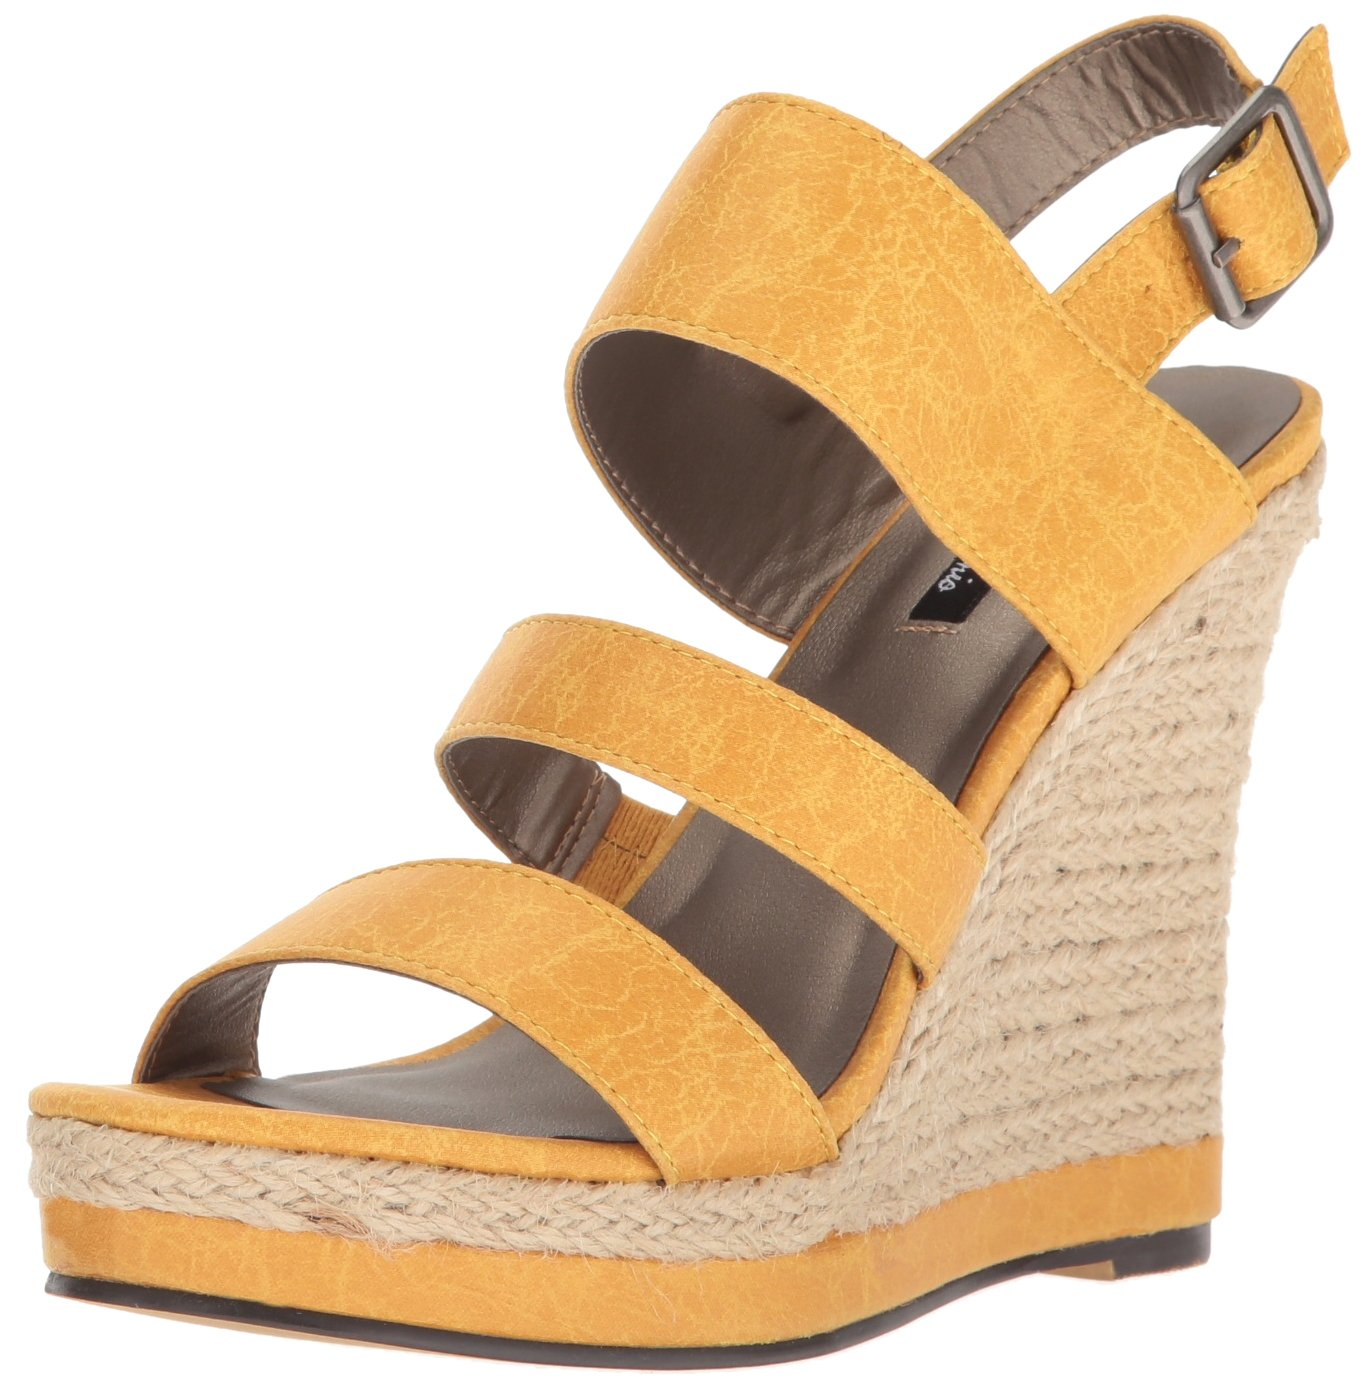 Michael Antonio Women's Givs Espadrille Wedge Sandal B01N063O4V 8.5 B(M) US|Yellow